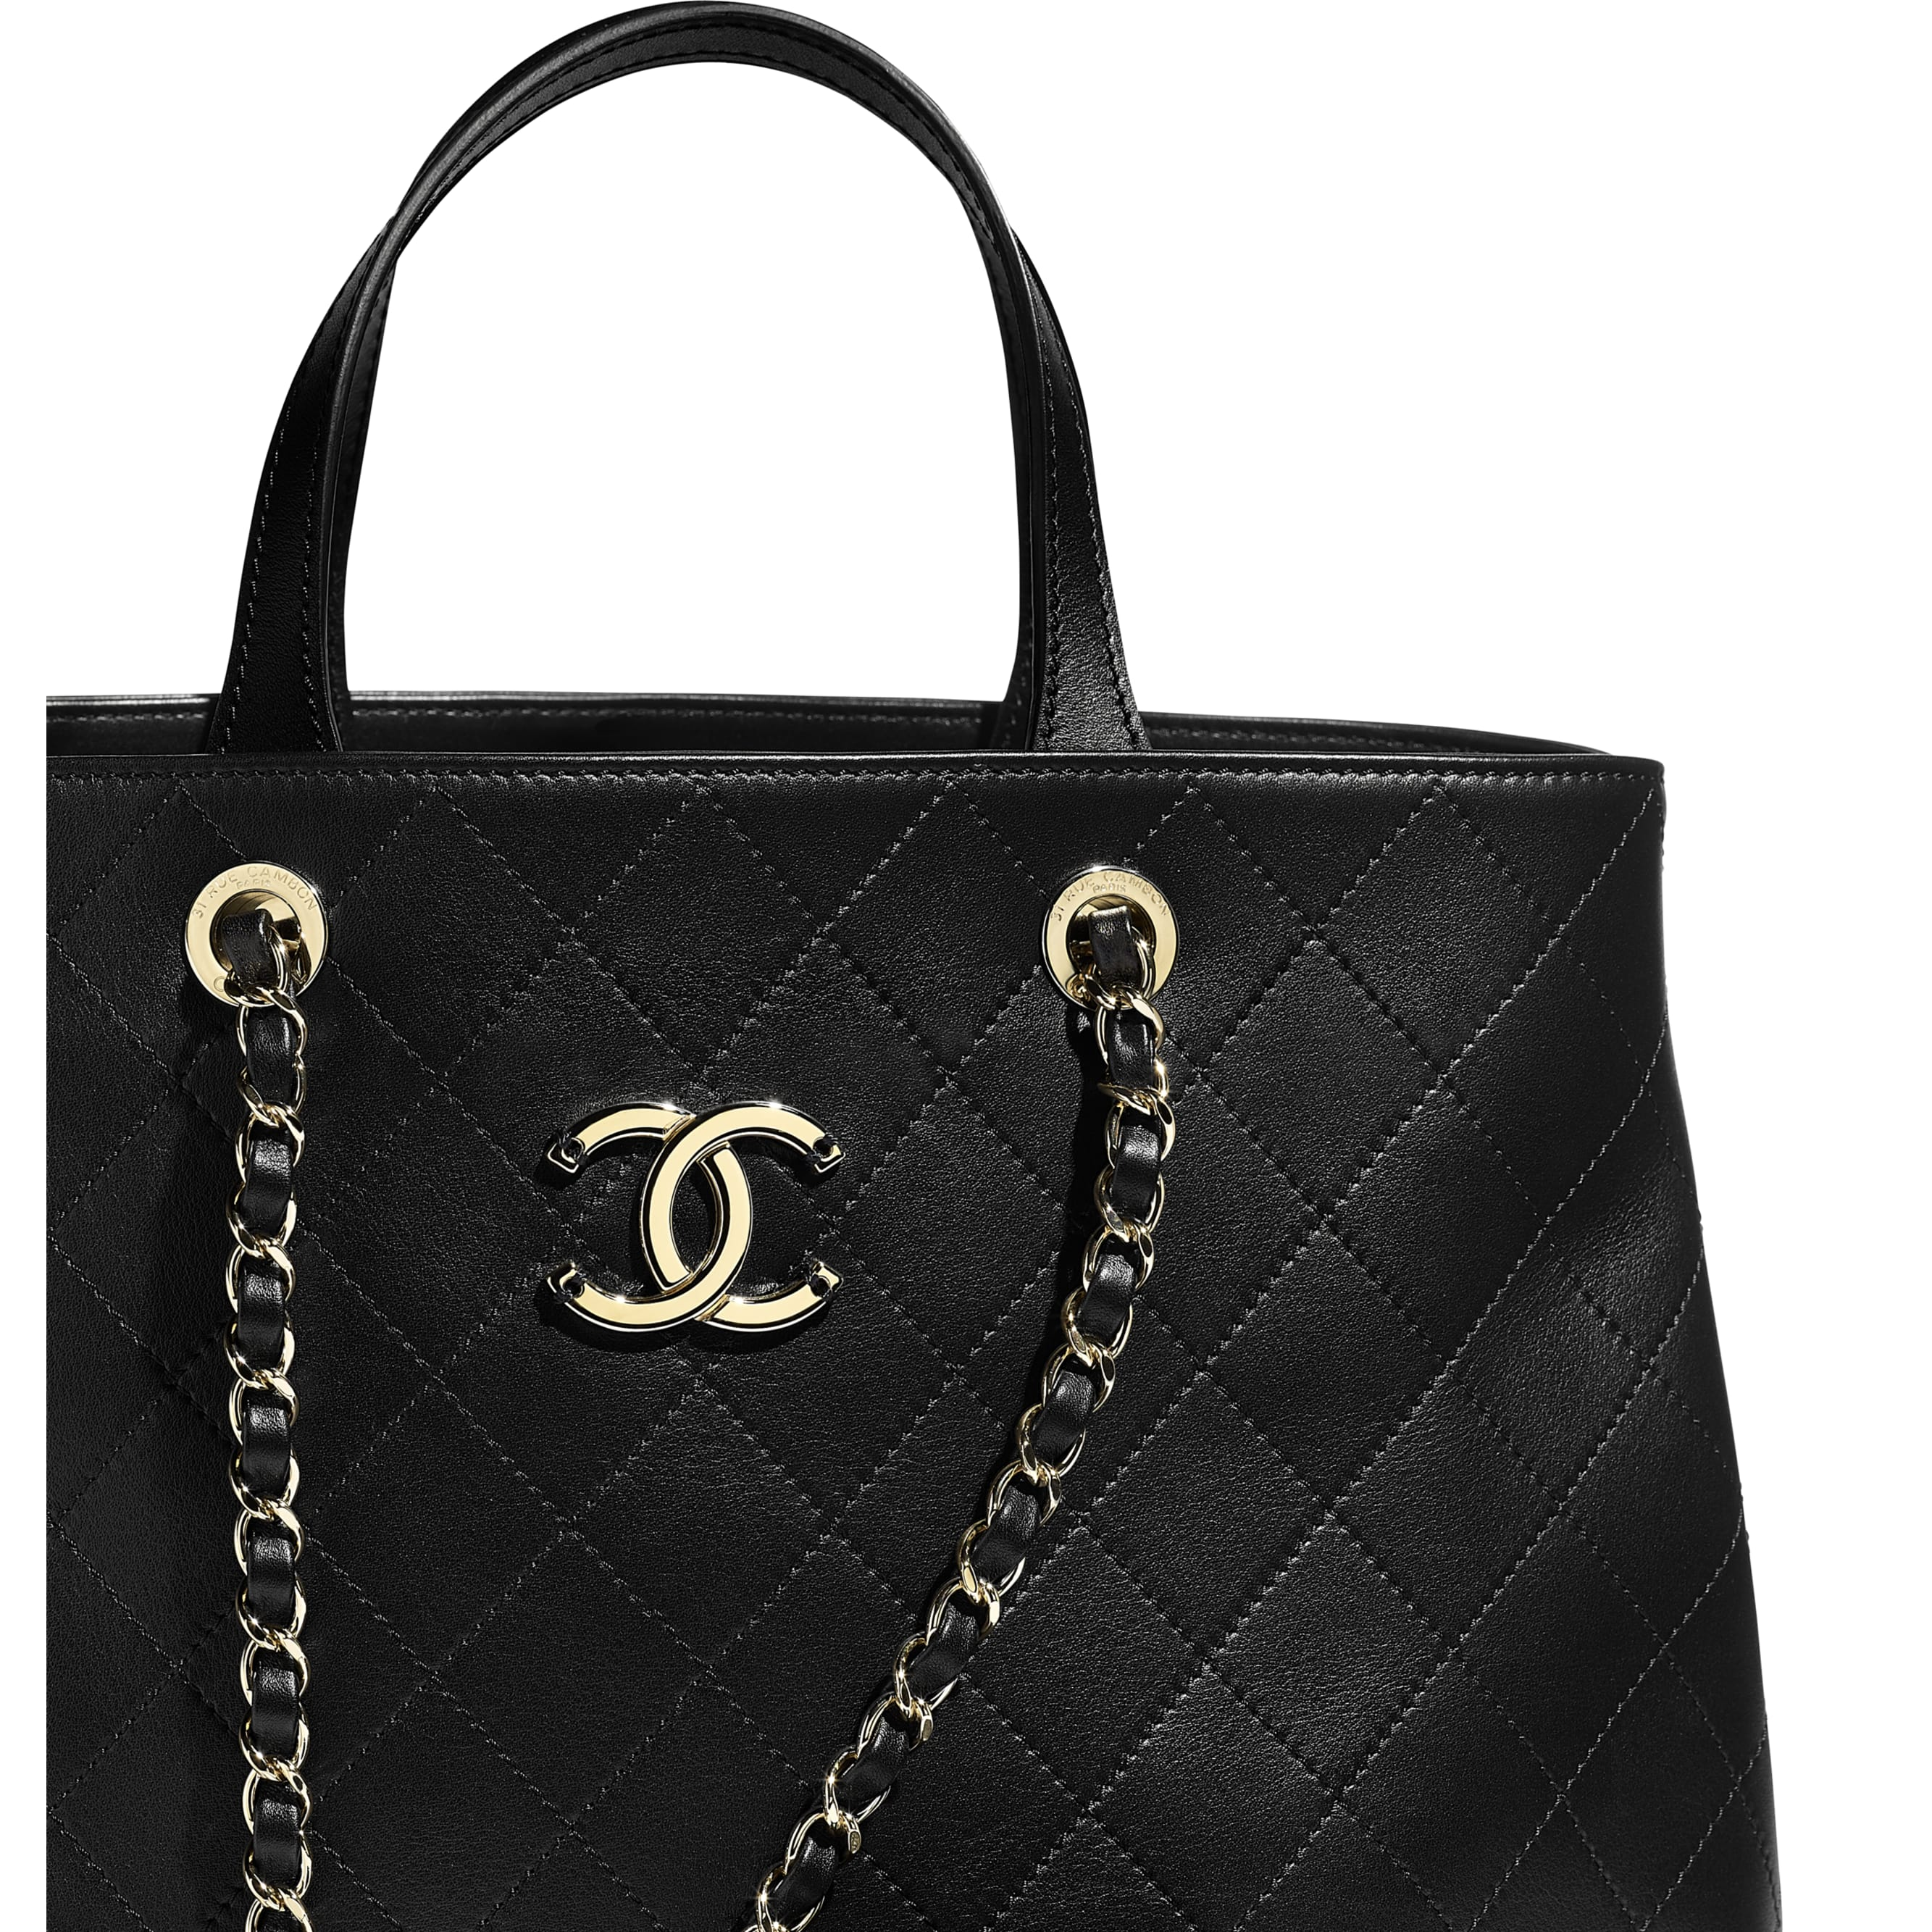 Small Shopping Bag - Black - Calfskin & Gold-Tone Metal - CHANEL - Extra view - see standard sized version